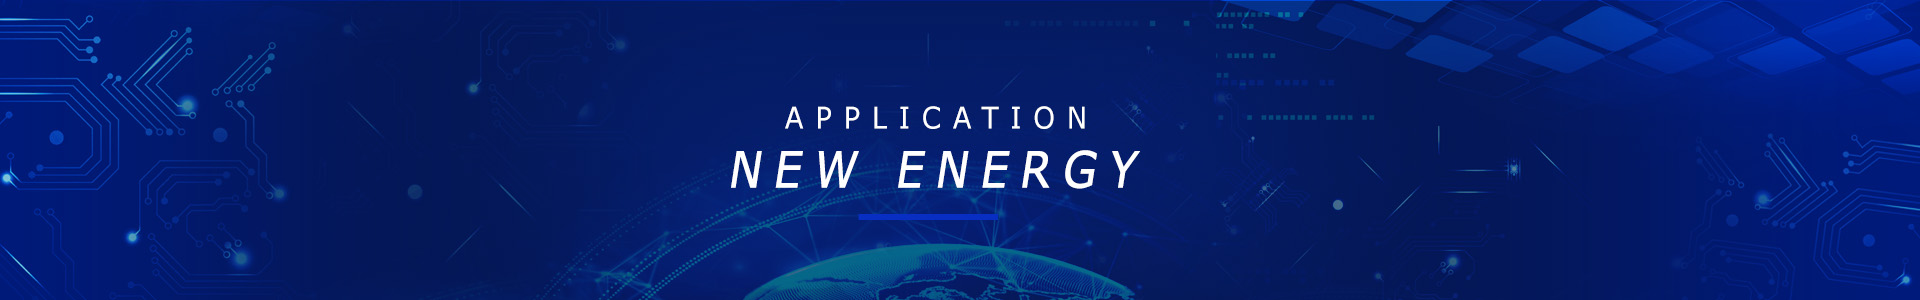 Application of electronic components in new energy industry - New Energy